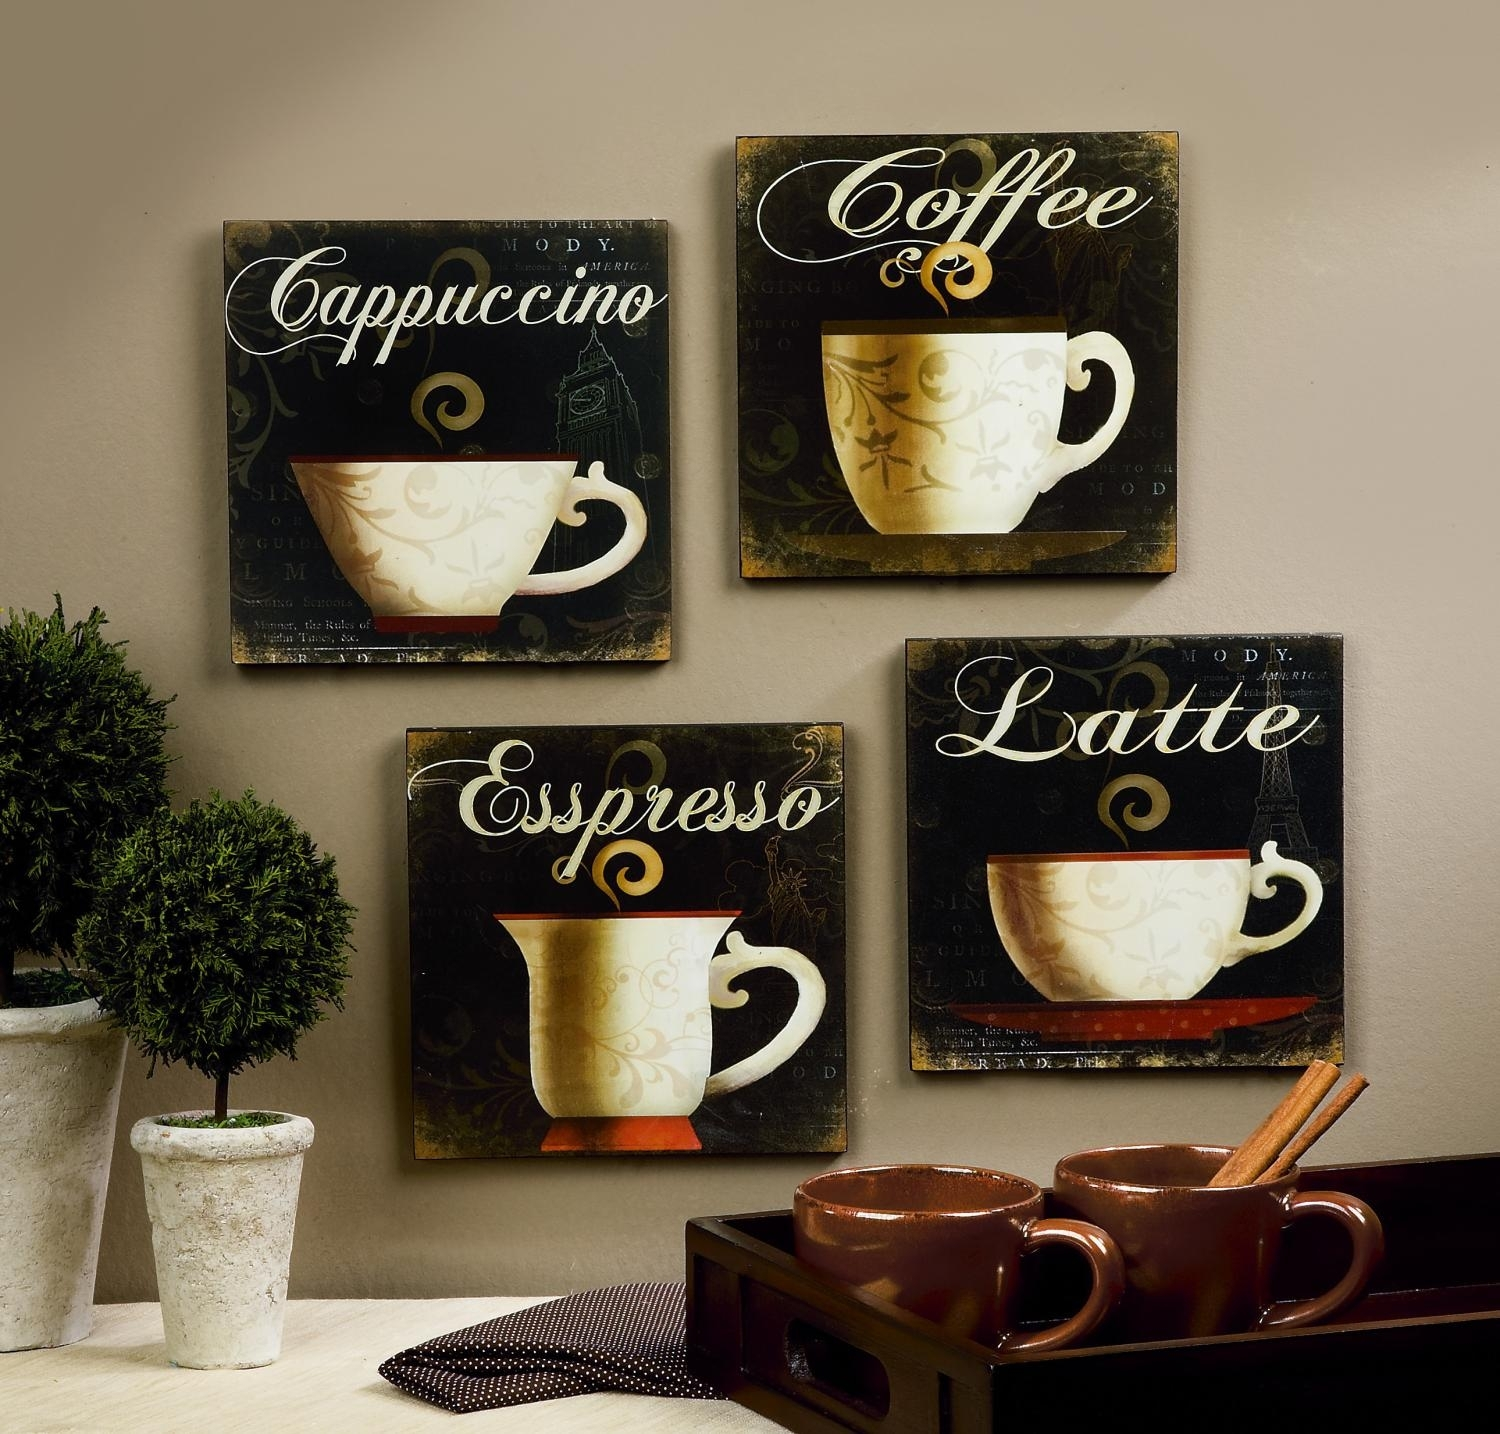 Wall Art Design Ideas: Simple House Coffee Wall Art Decorative With Recent Coffee Canvas Wall Art (View 15 of 15)